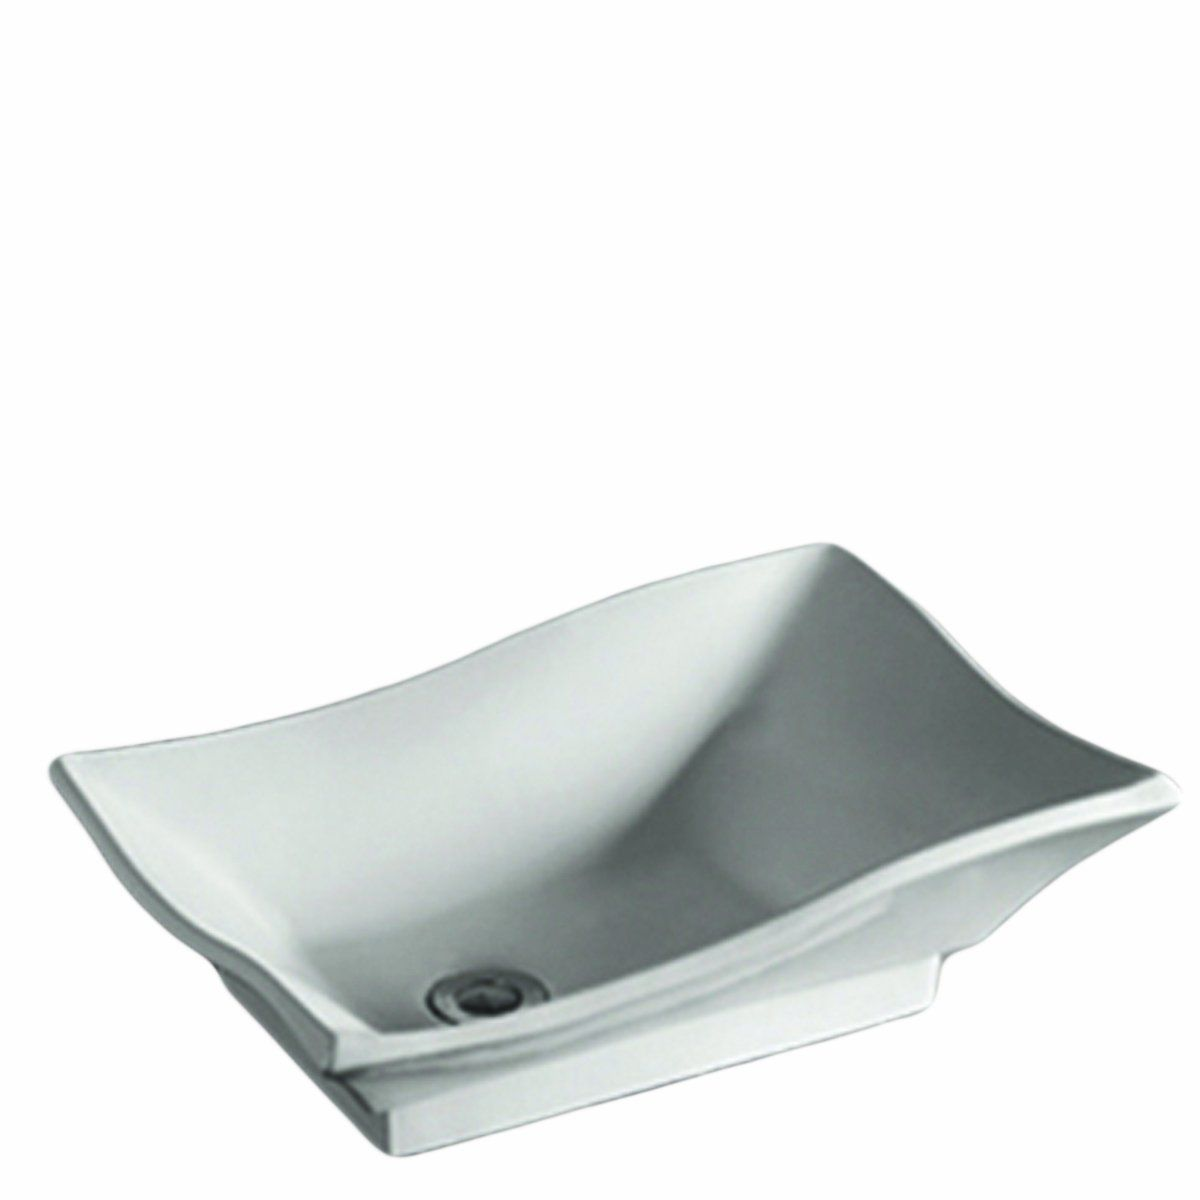 Whitehaus Whkn1078 Wh Isabella 20 Inch Rectangular Above Counter Lavatory Basin With Offset Center Drain And No Overflow Whit White Vessel Sink Basin Lavatory